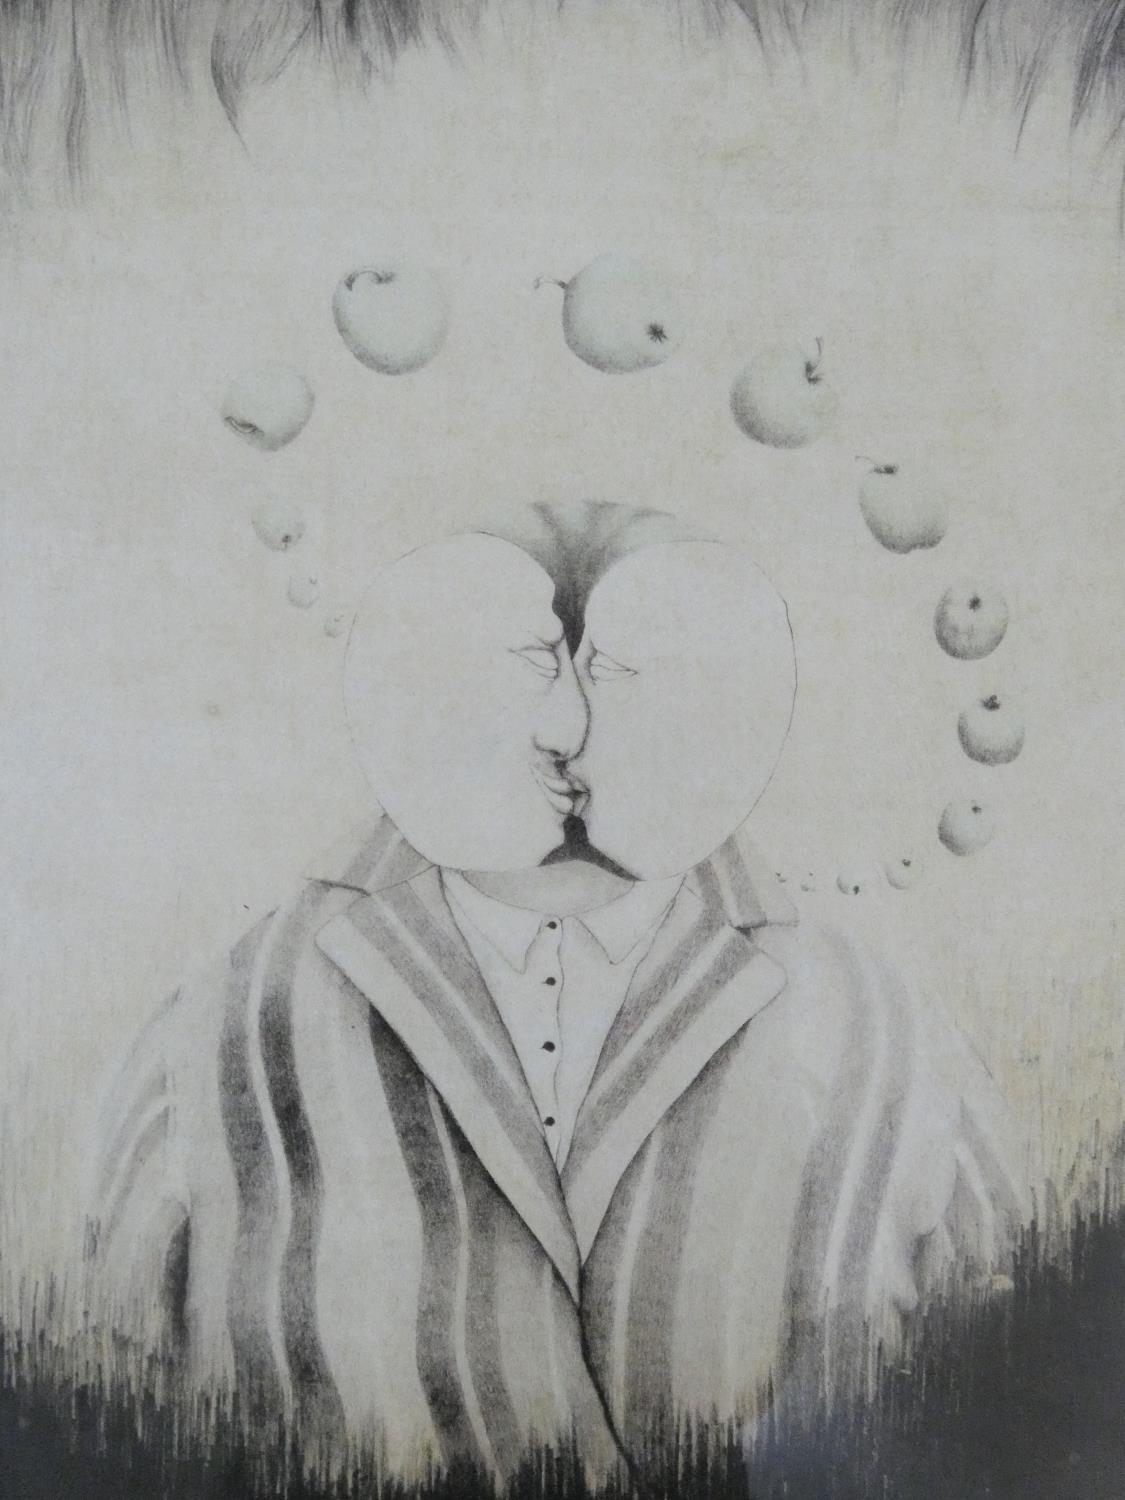 A framed and glazed surrealist signed print of two figures kissing surrounded by a halo of apples.